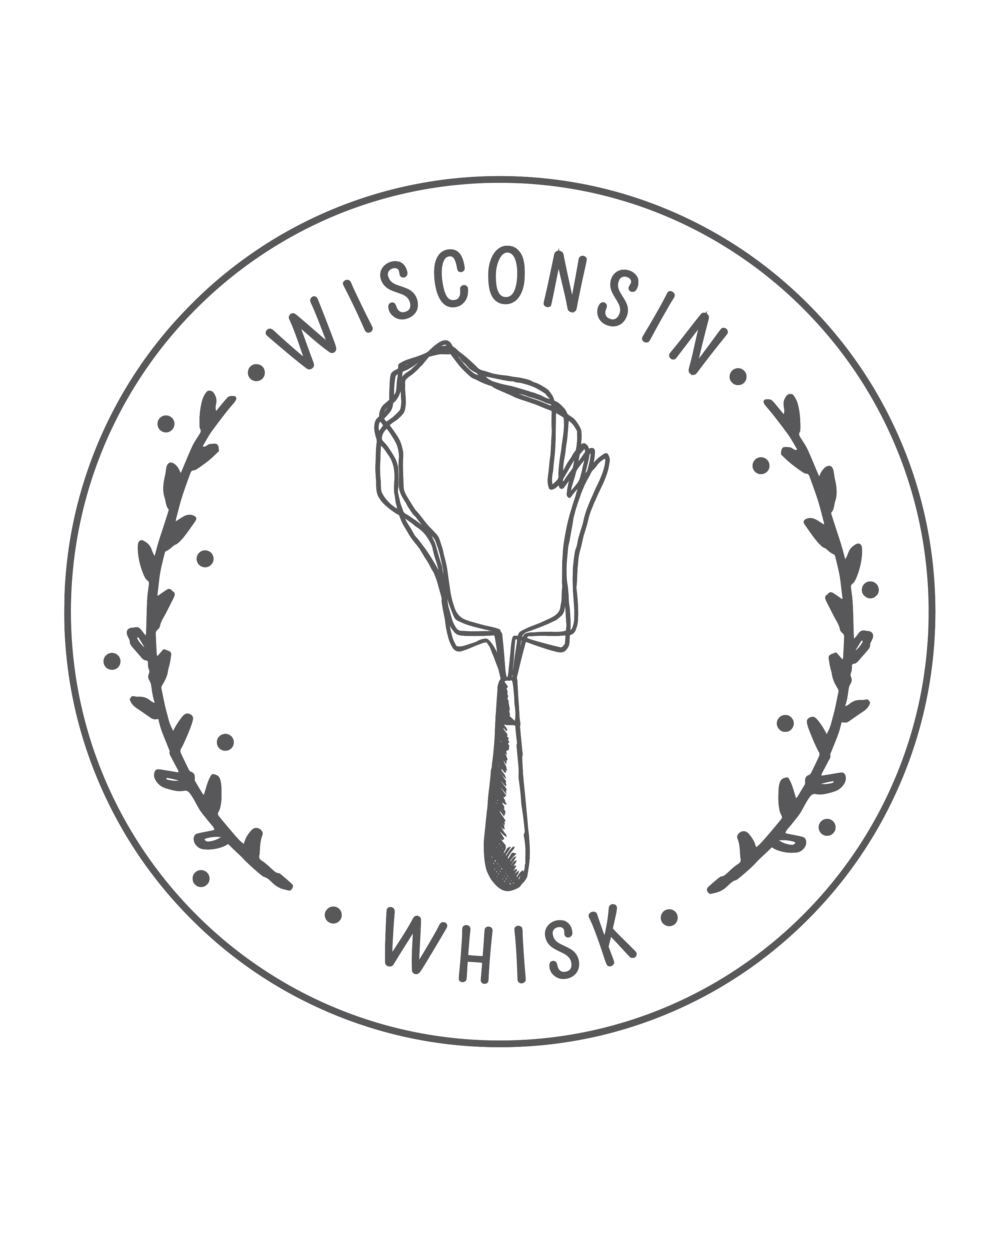 Whisk Badge.png